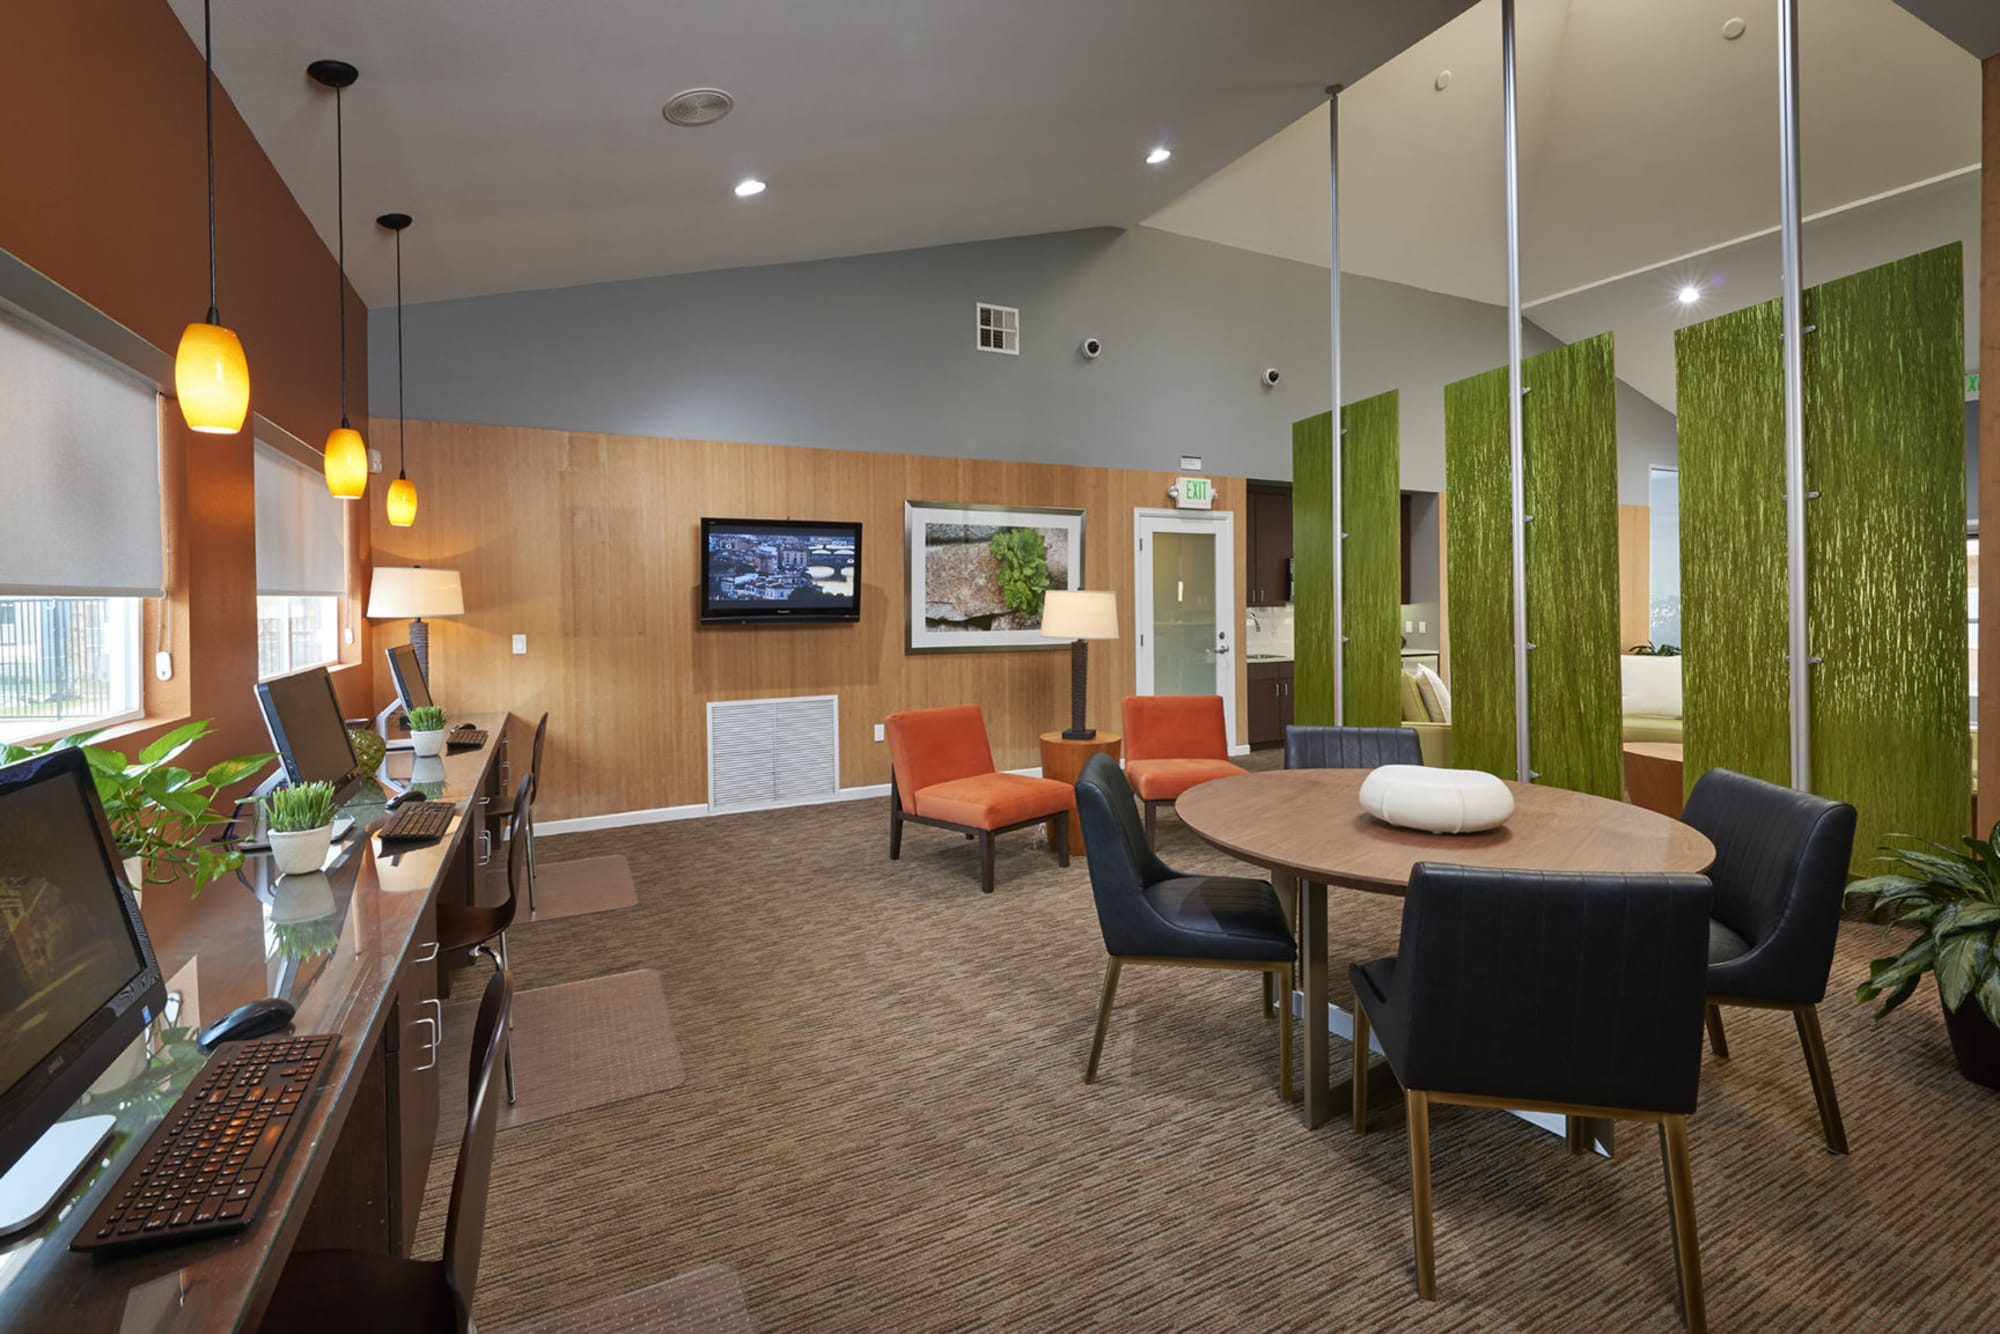 The business center at Alton Green Apartments in Denver, Colorado